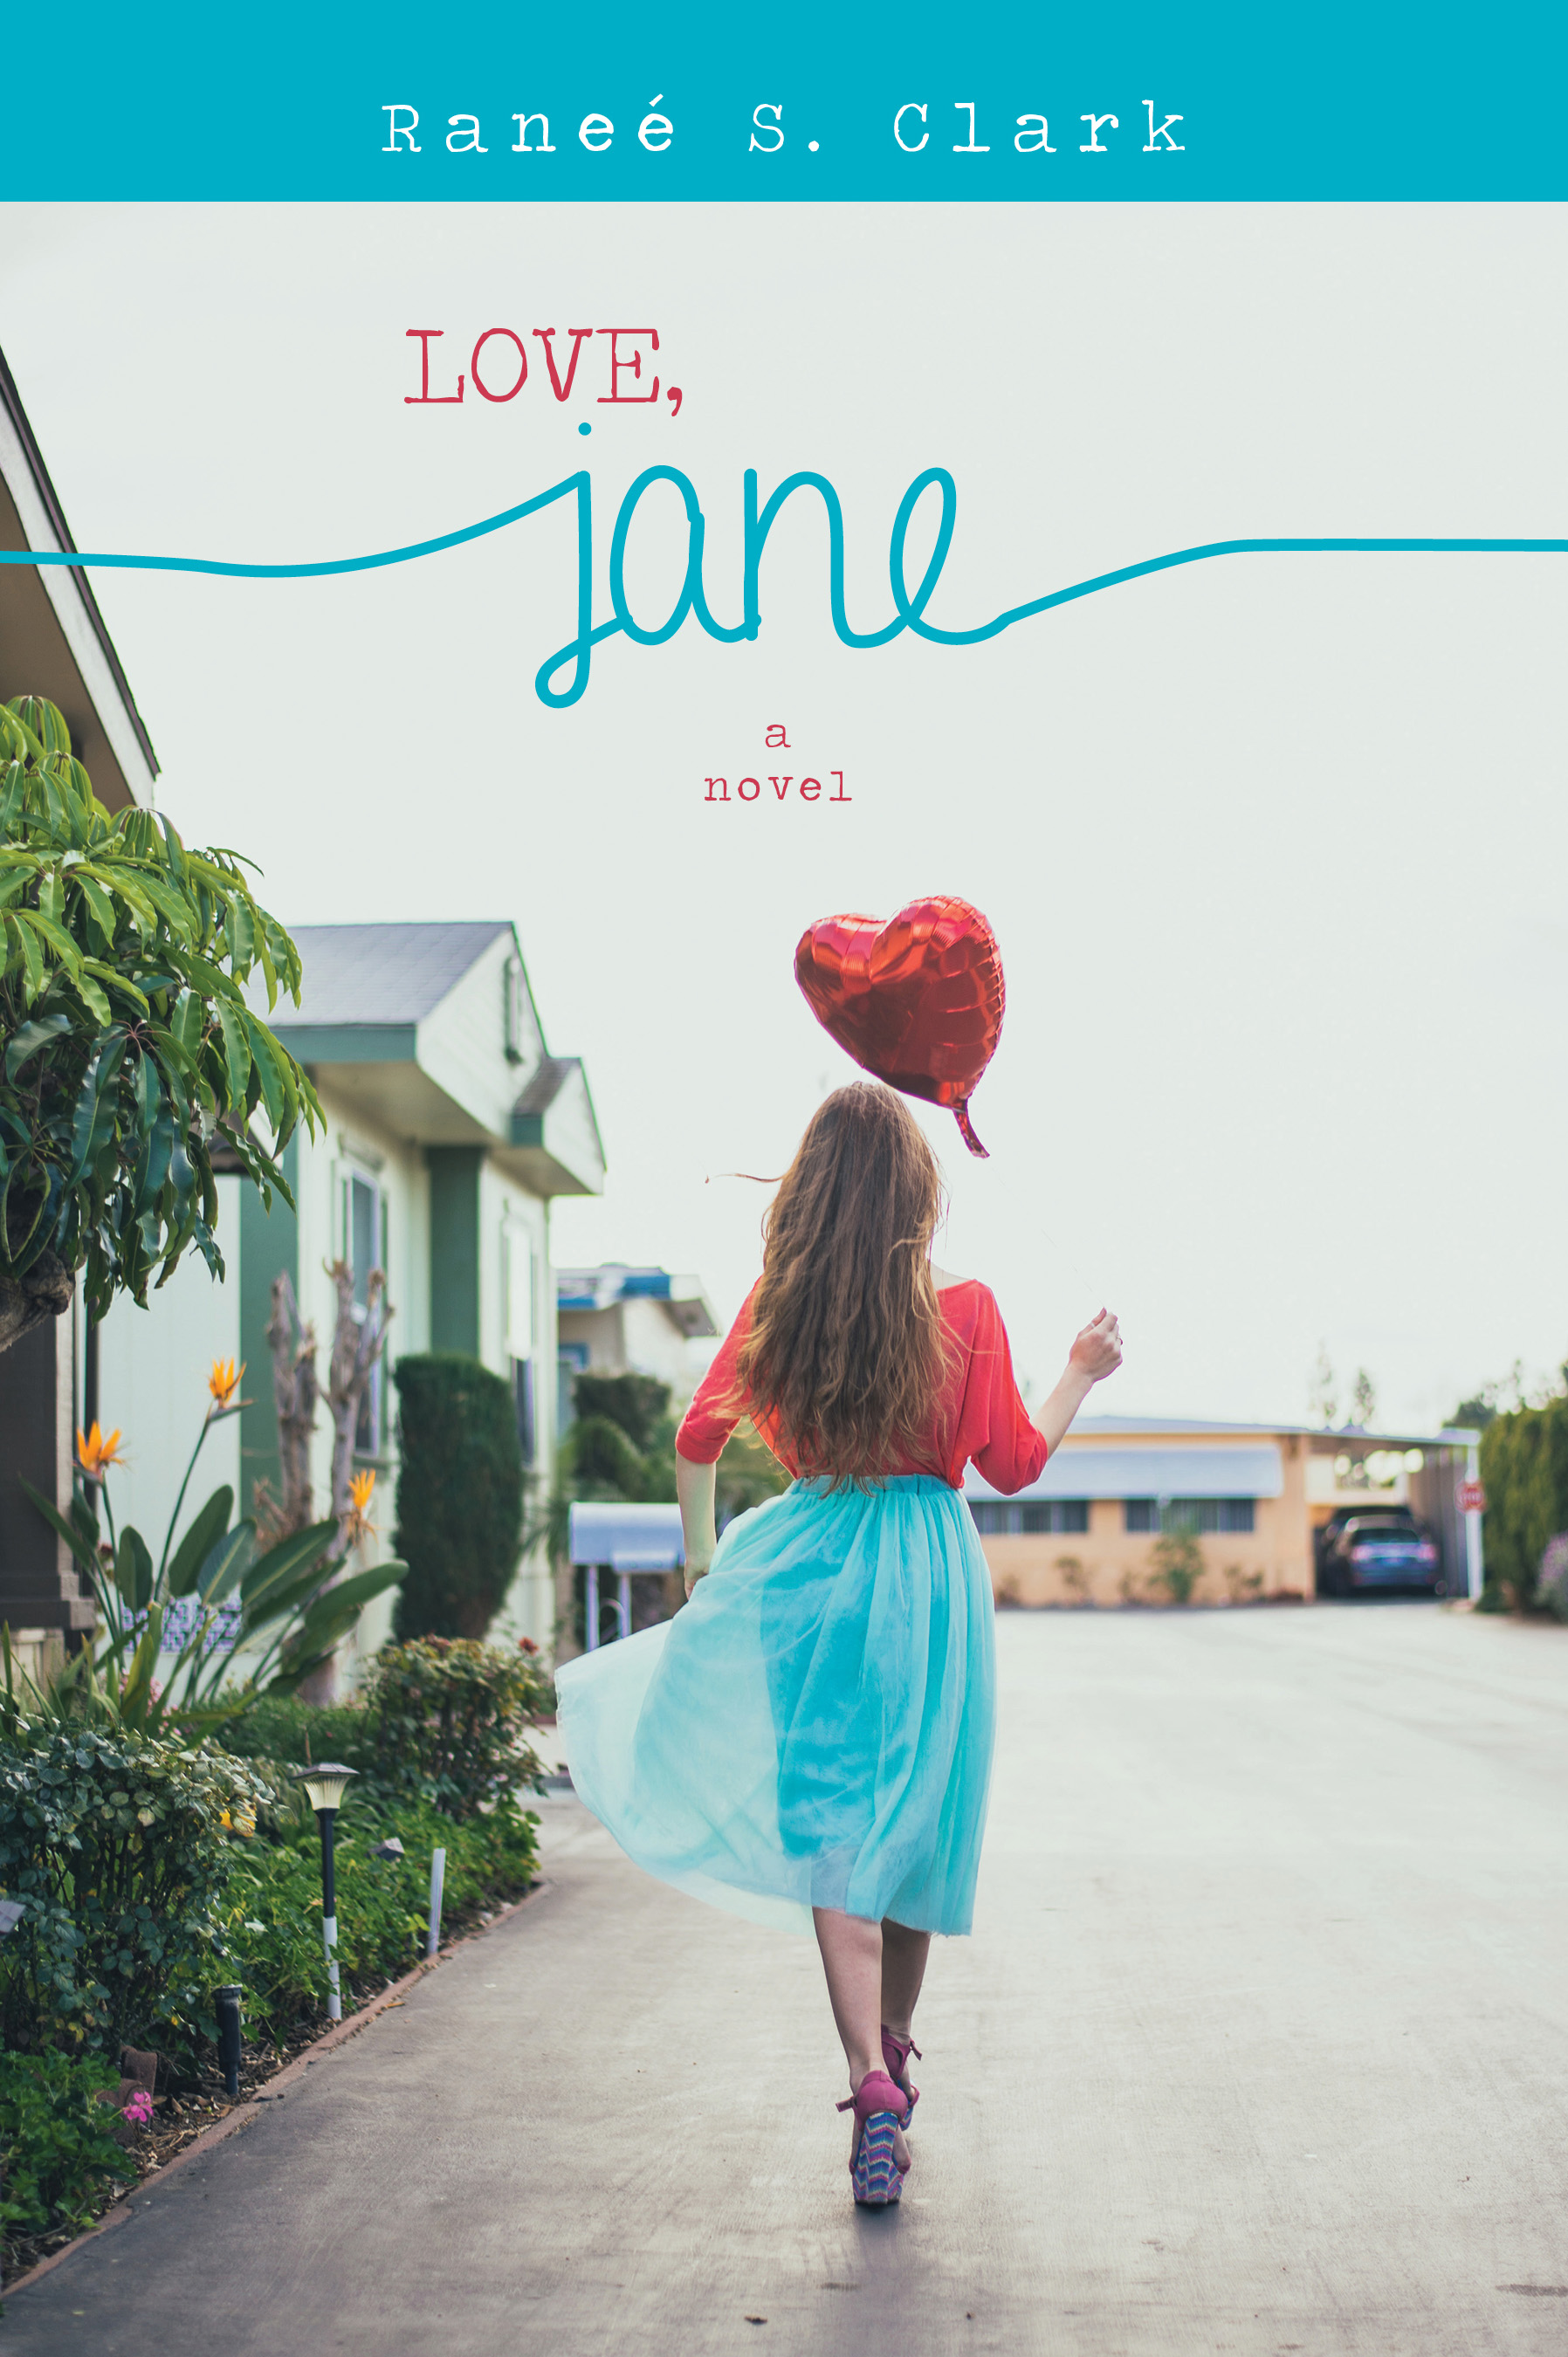 Love, Jane book cover: Girl wearing bright blue skirt, red shirt, colorful wedge sandals, holding a red heart cellophane balloon walking away from the camera next to building green building with tropical plants.